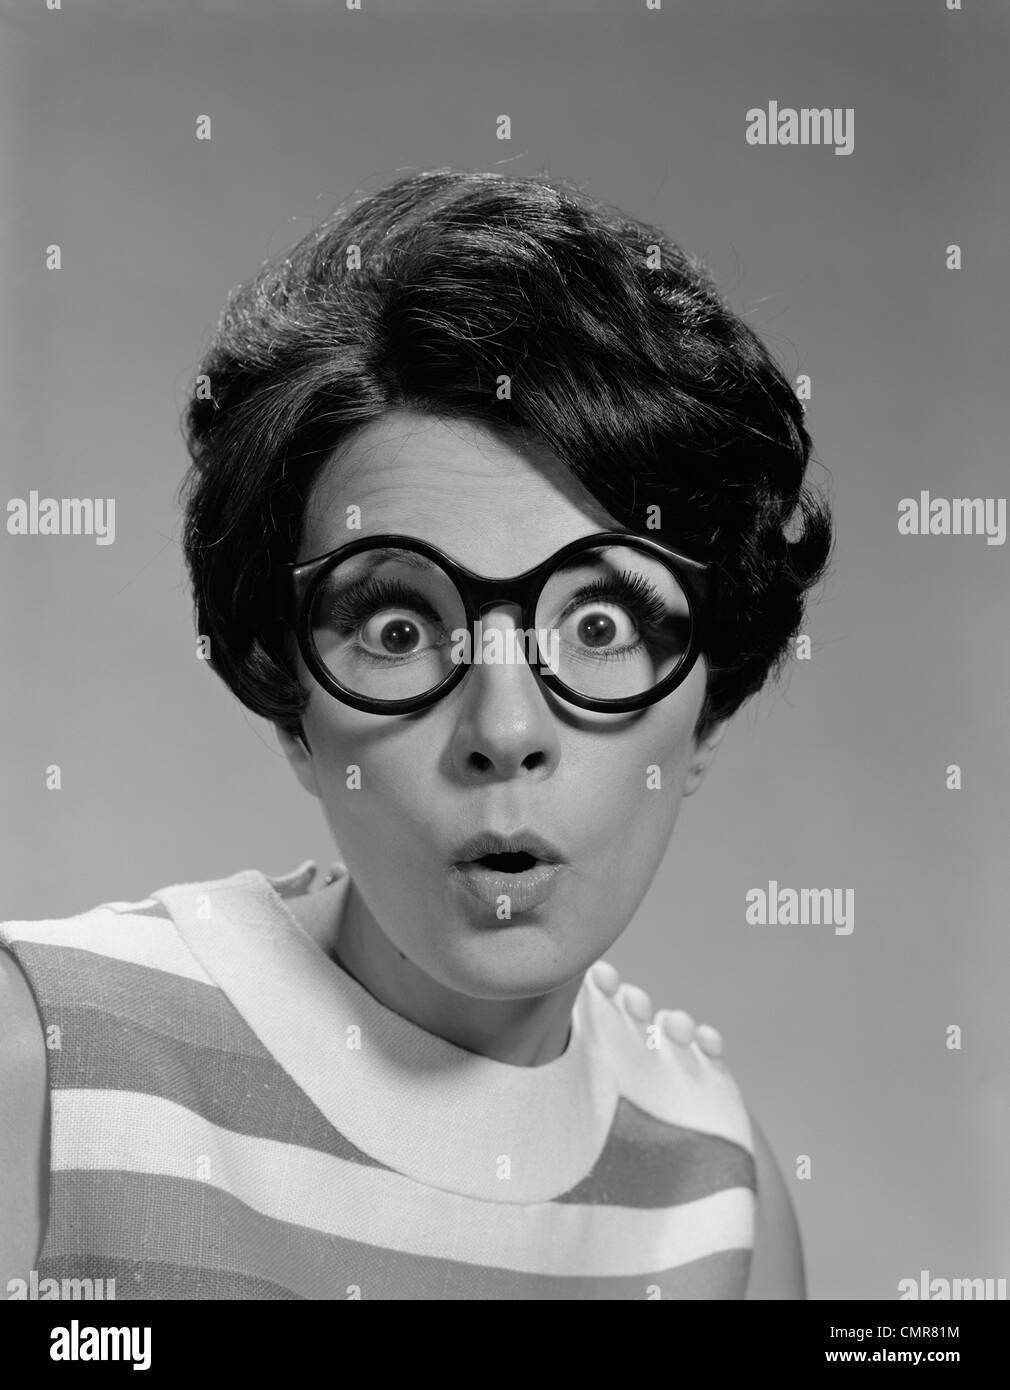 1960s PORTRAIT BRUNETTE WEARING DARK THICK ROUND EYEGLASSES WITH EYES WIDE OPEN - Stock Image